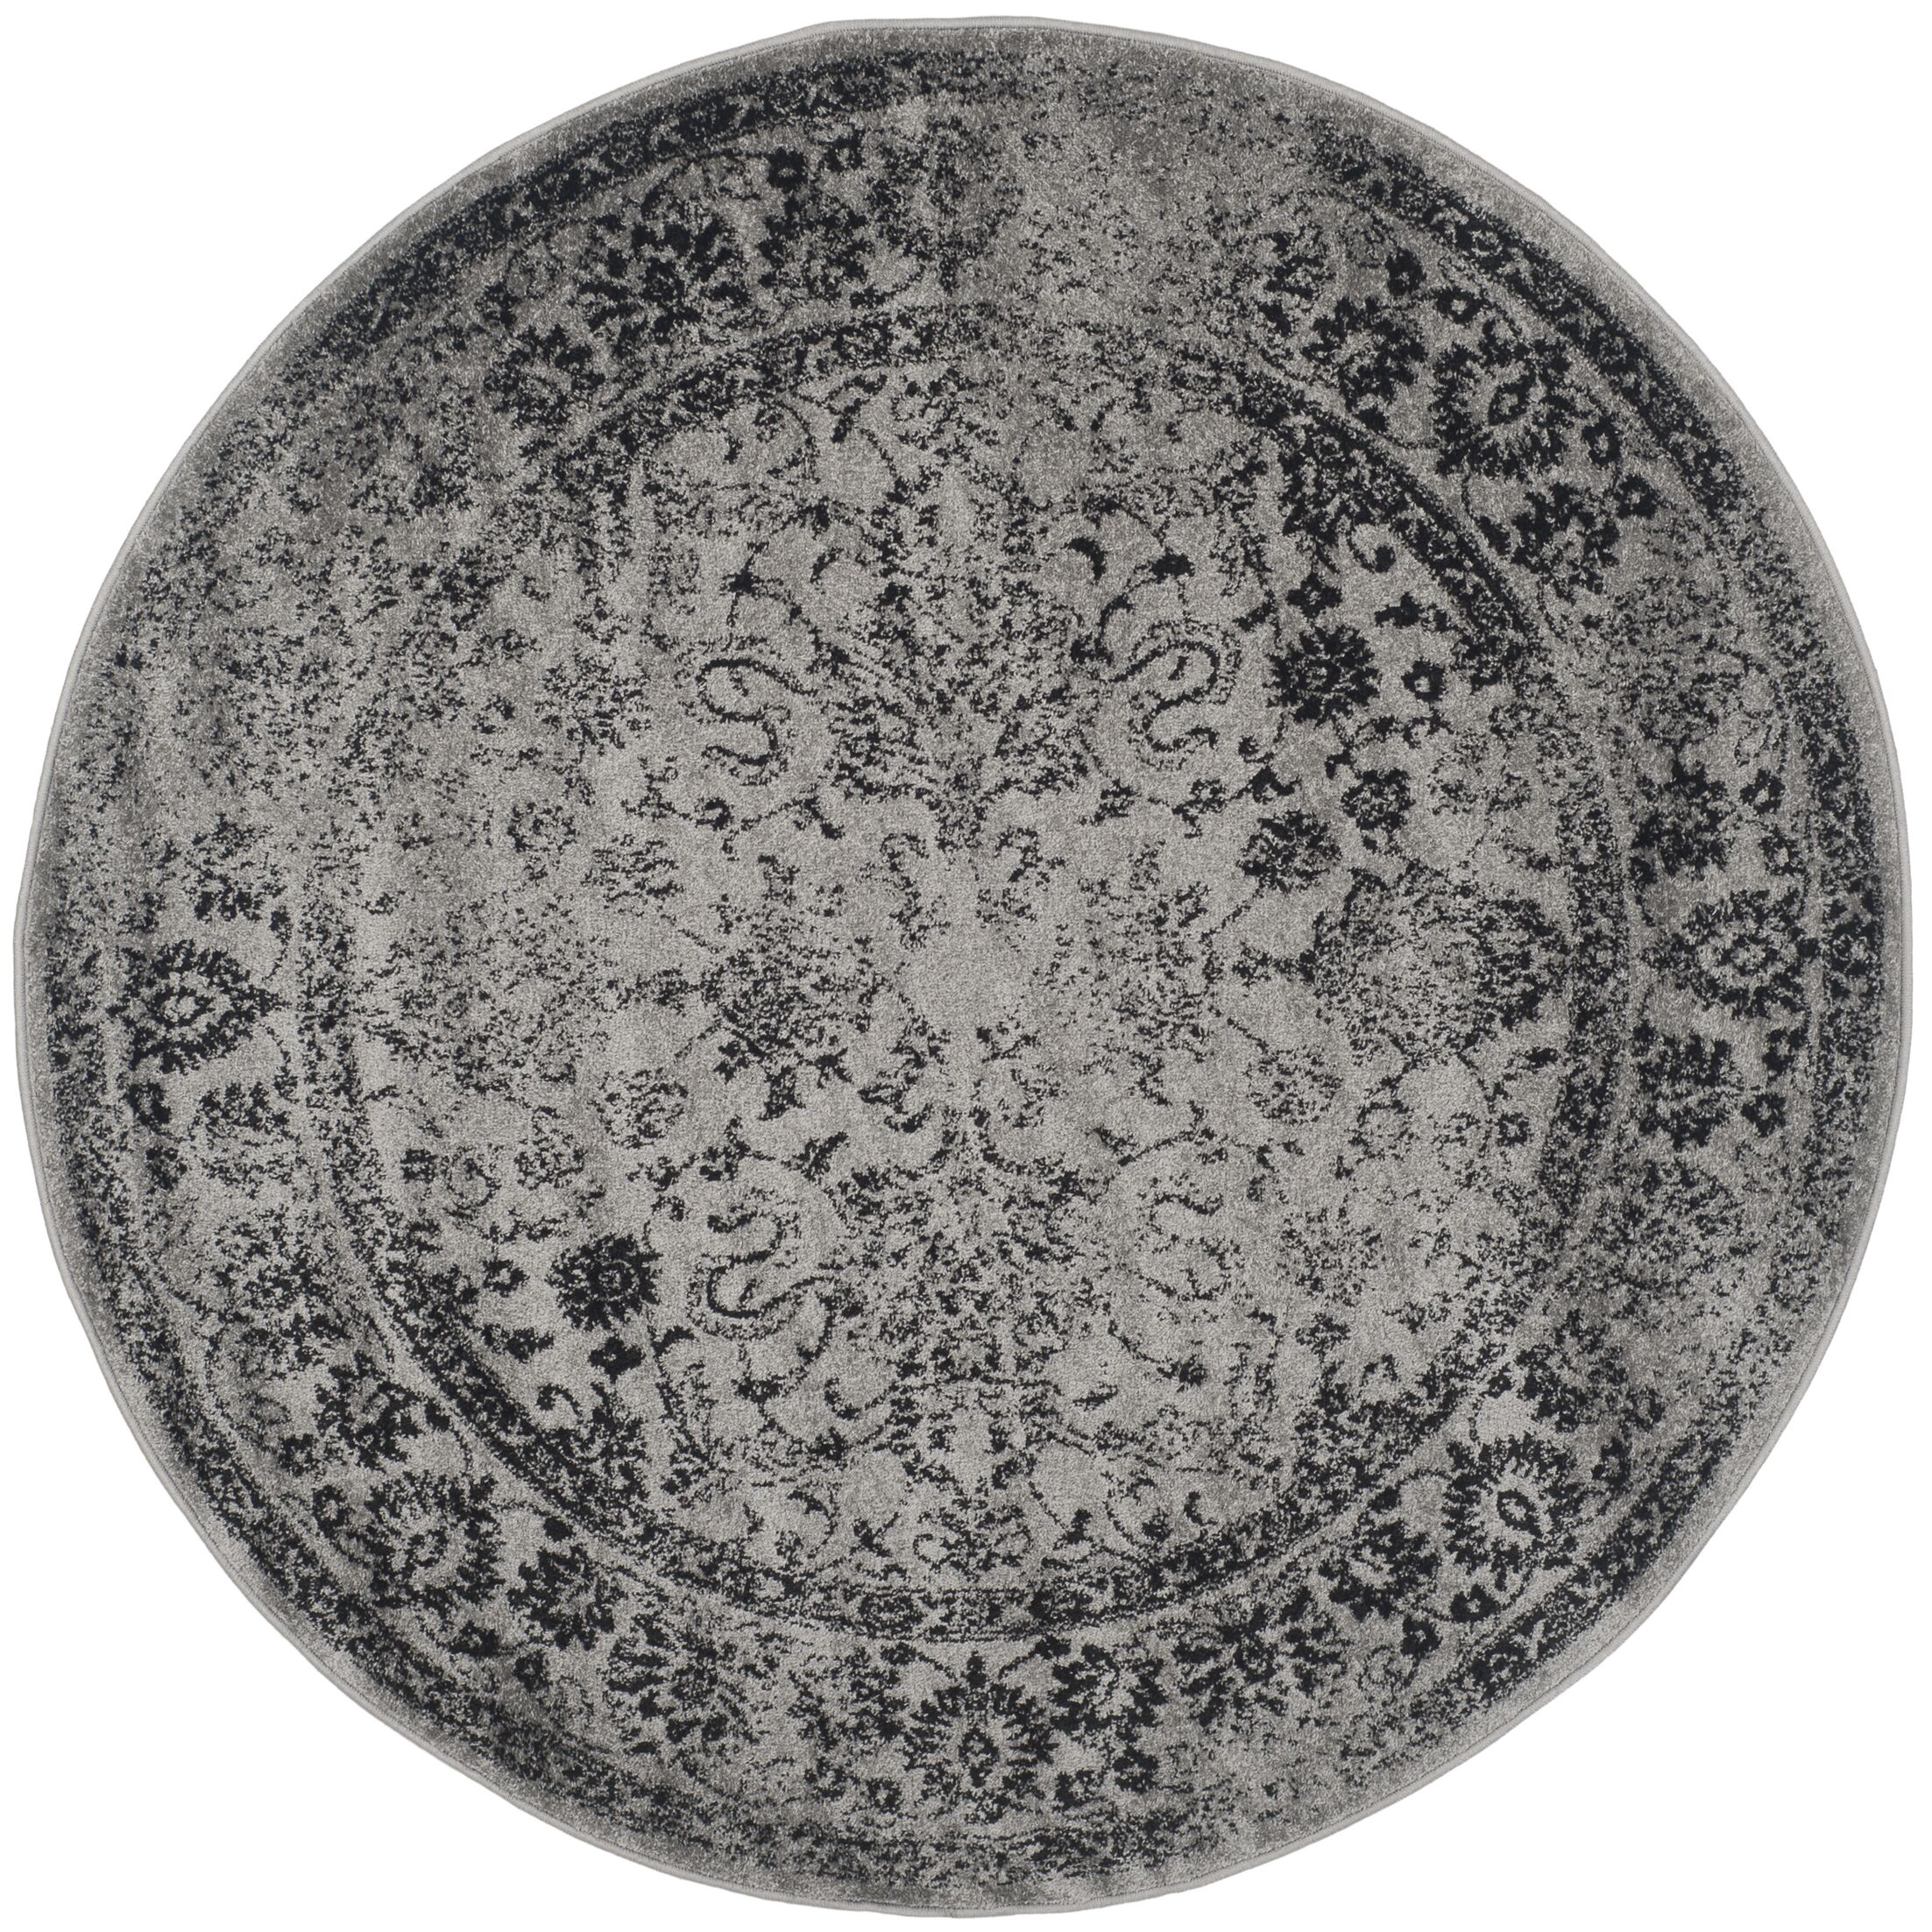 Howser Gray/Black Area Rug Rug Size: Round 10'